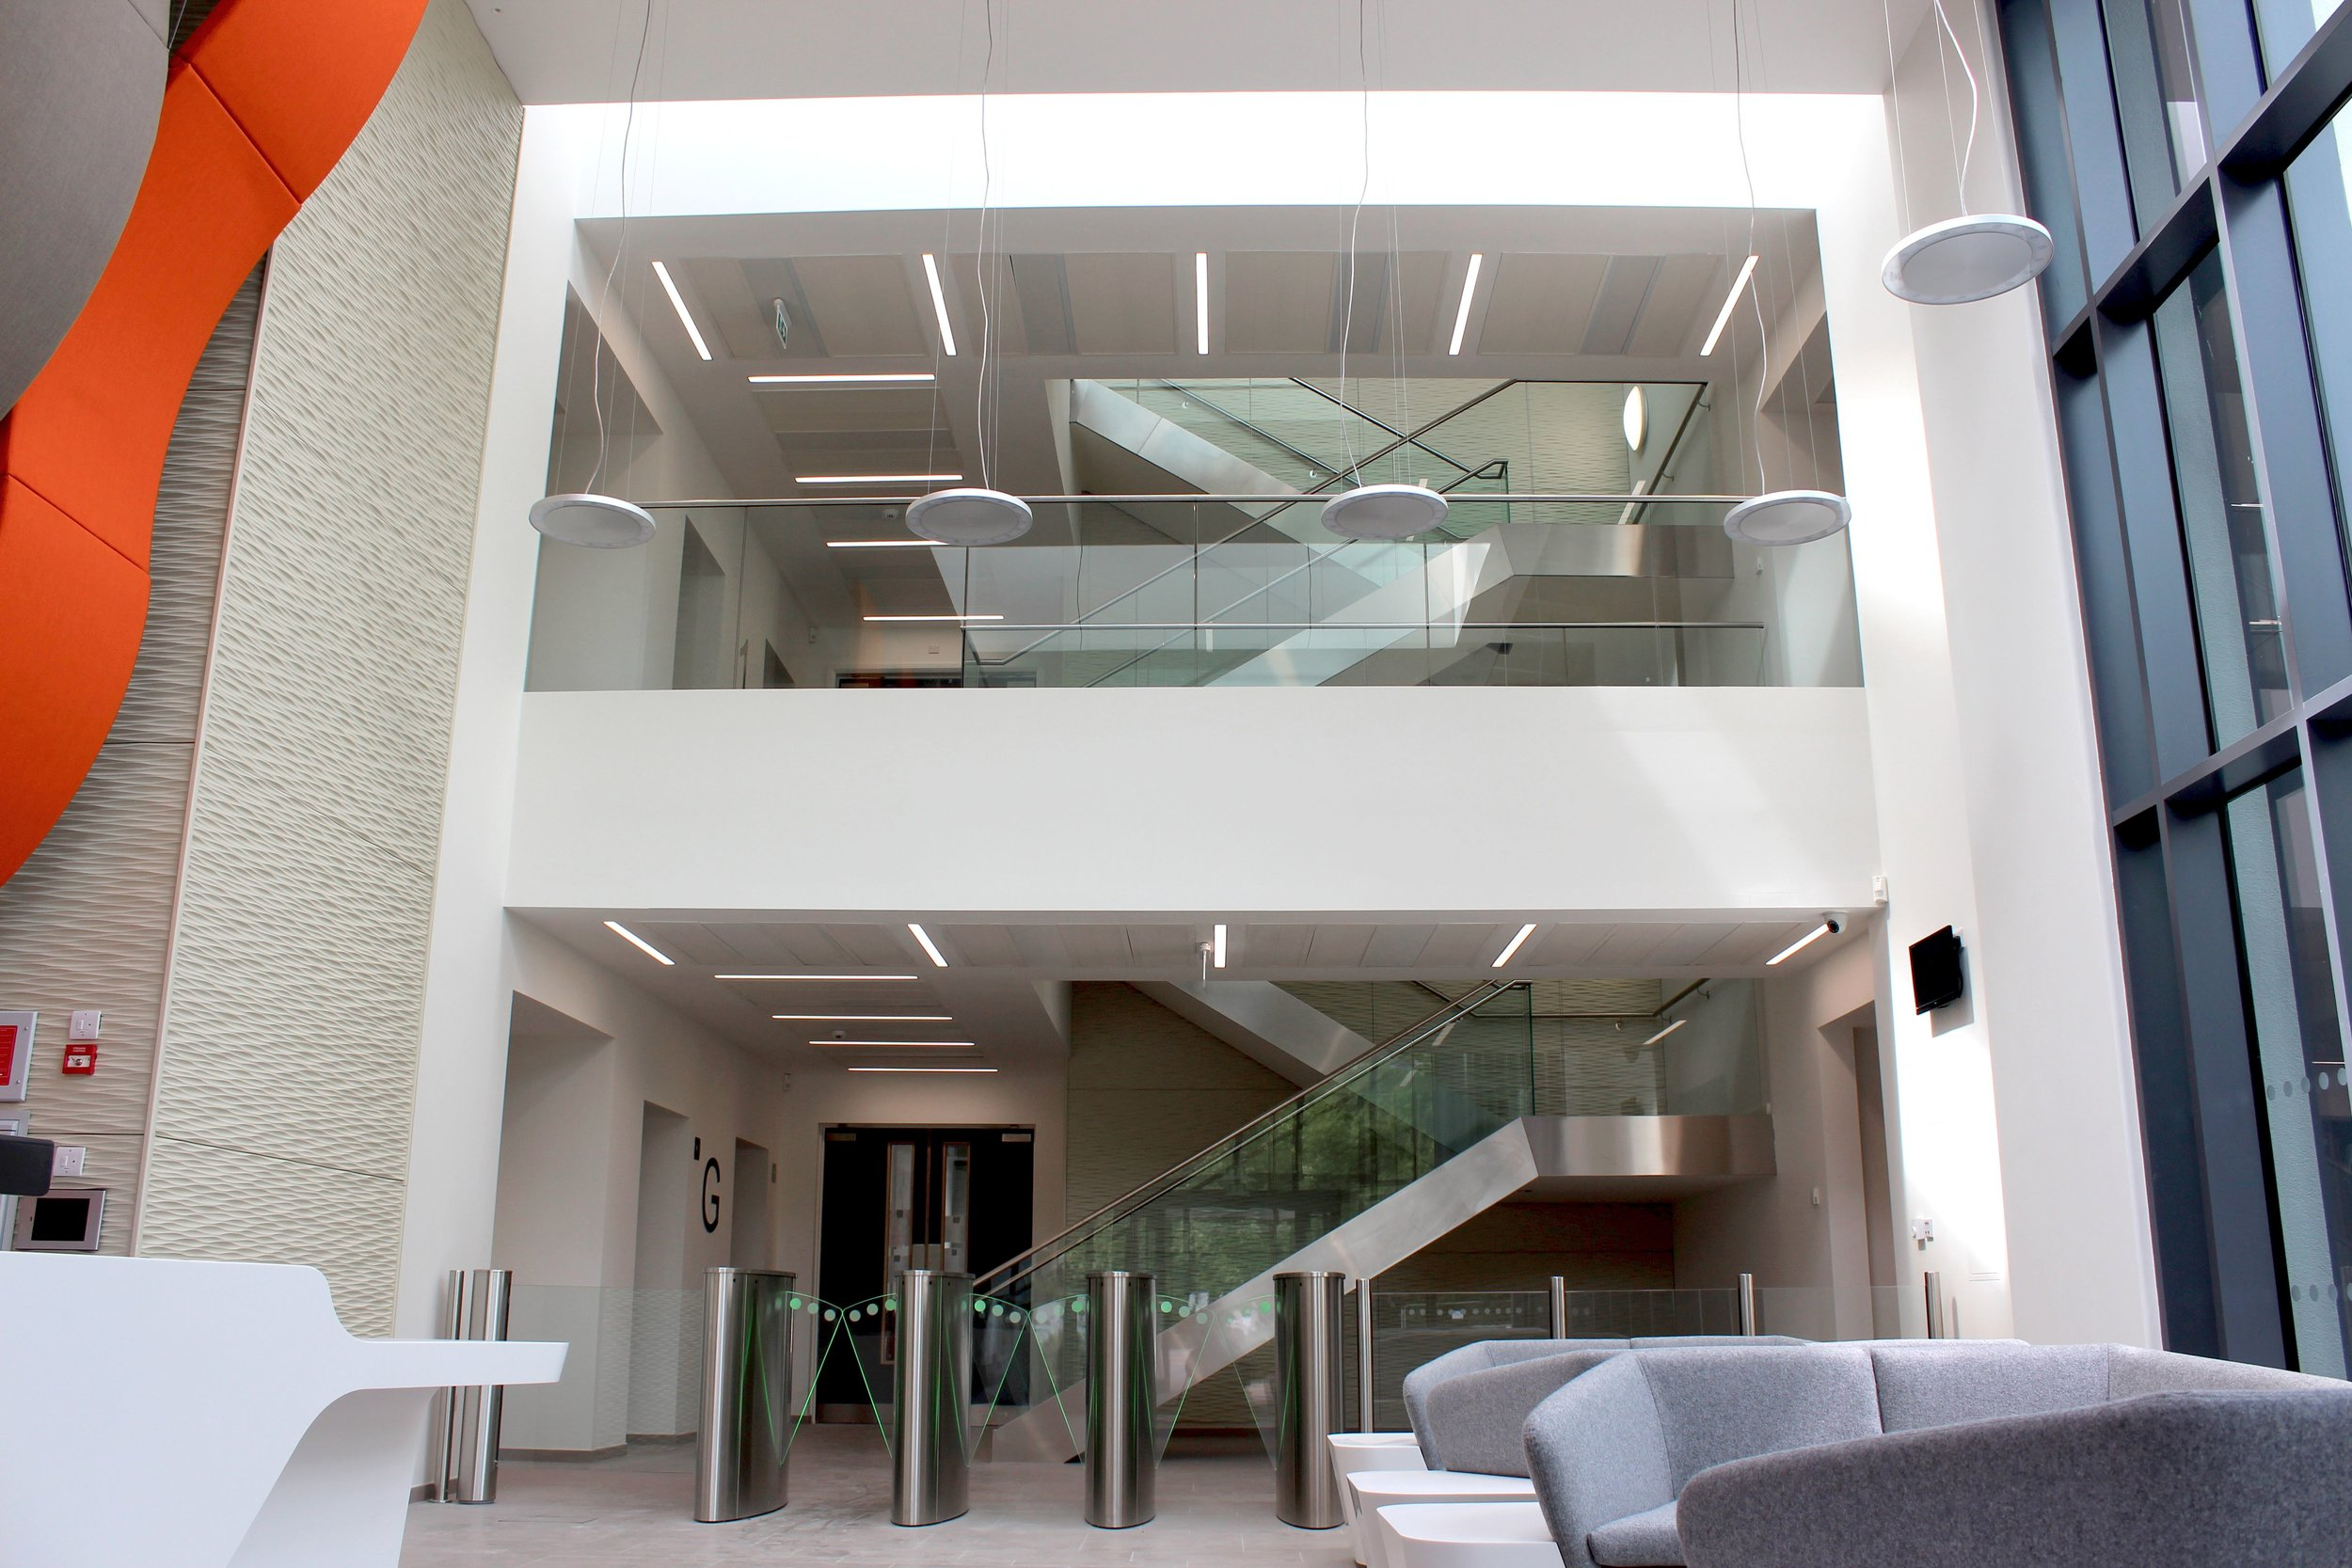 If you require lighting design and supply for a CAT B fit out scheme, why not get in touch with our experienced design team? - Get in touch us using our contact form: